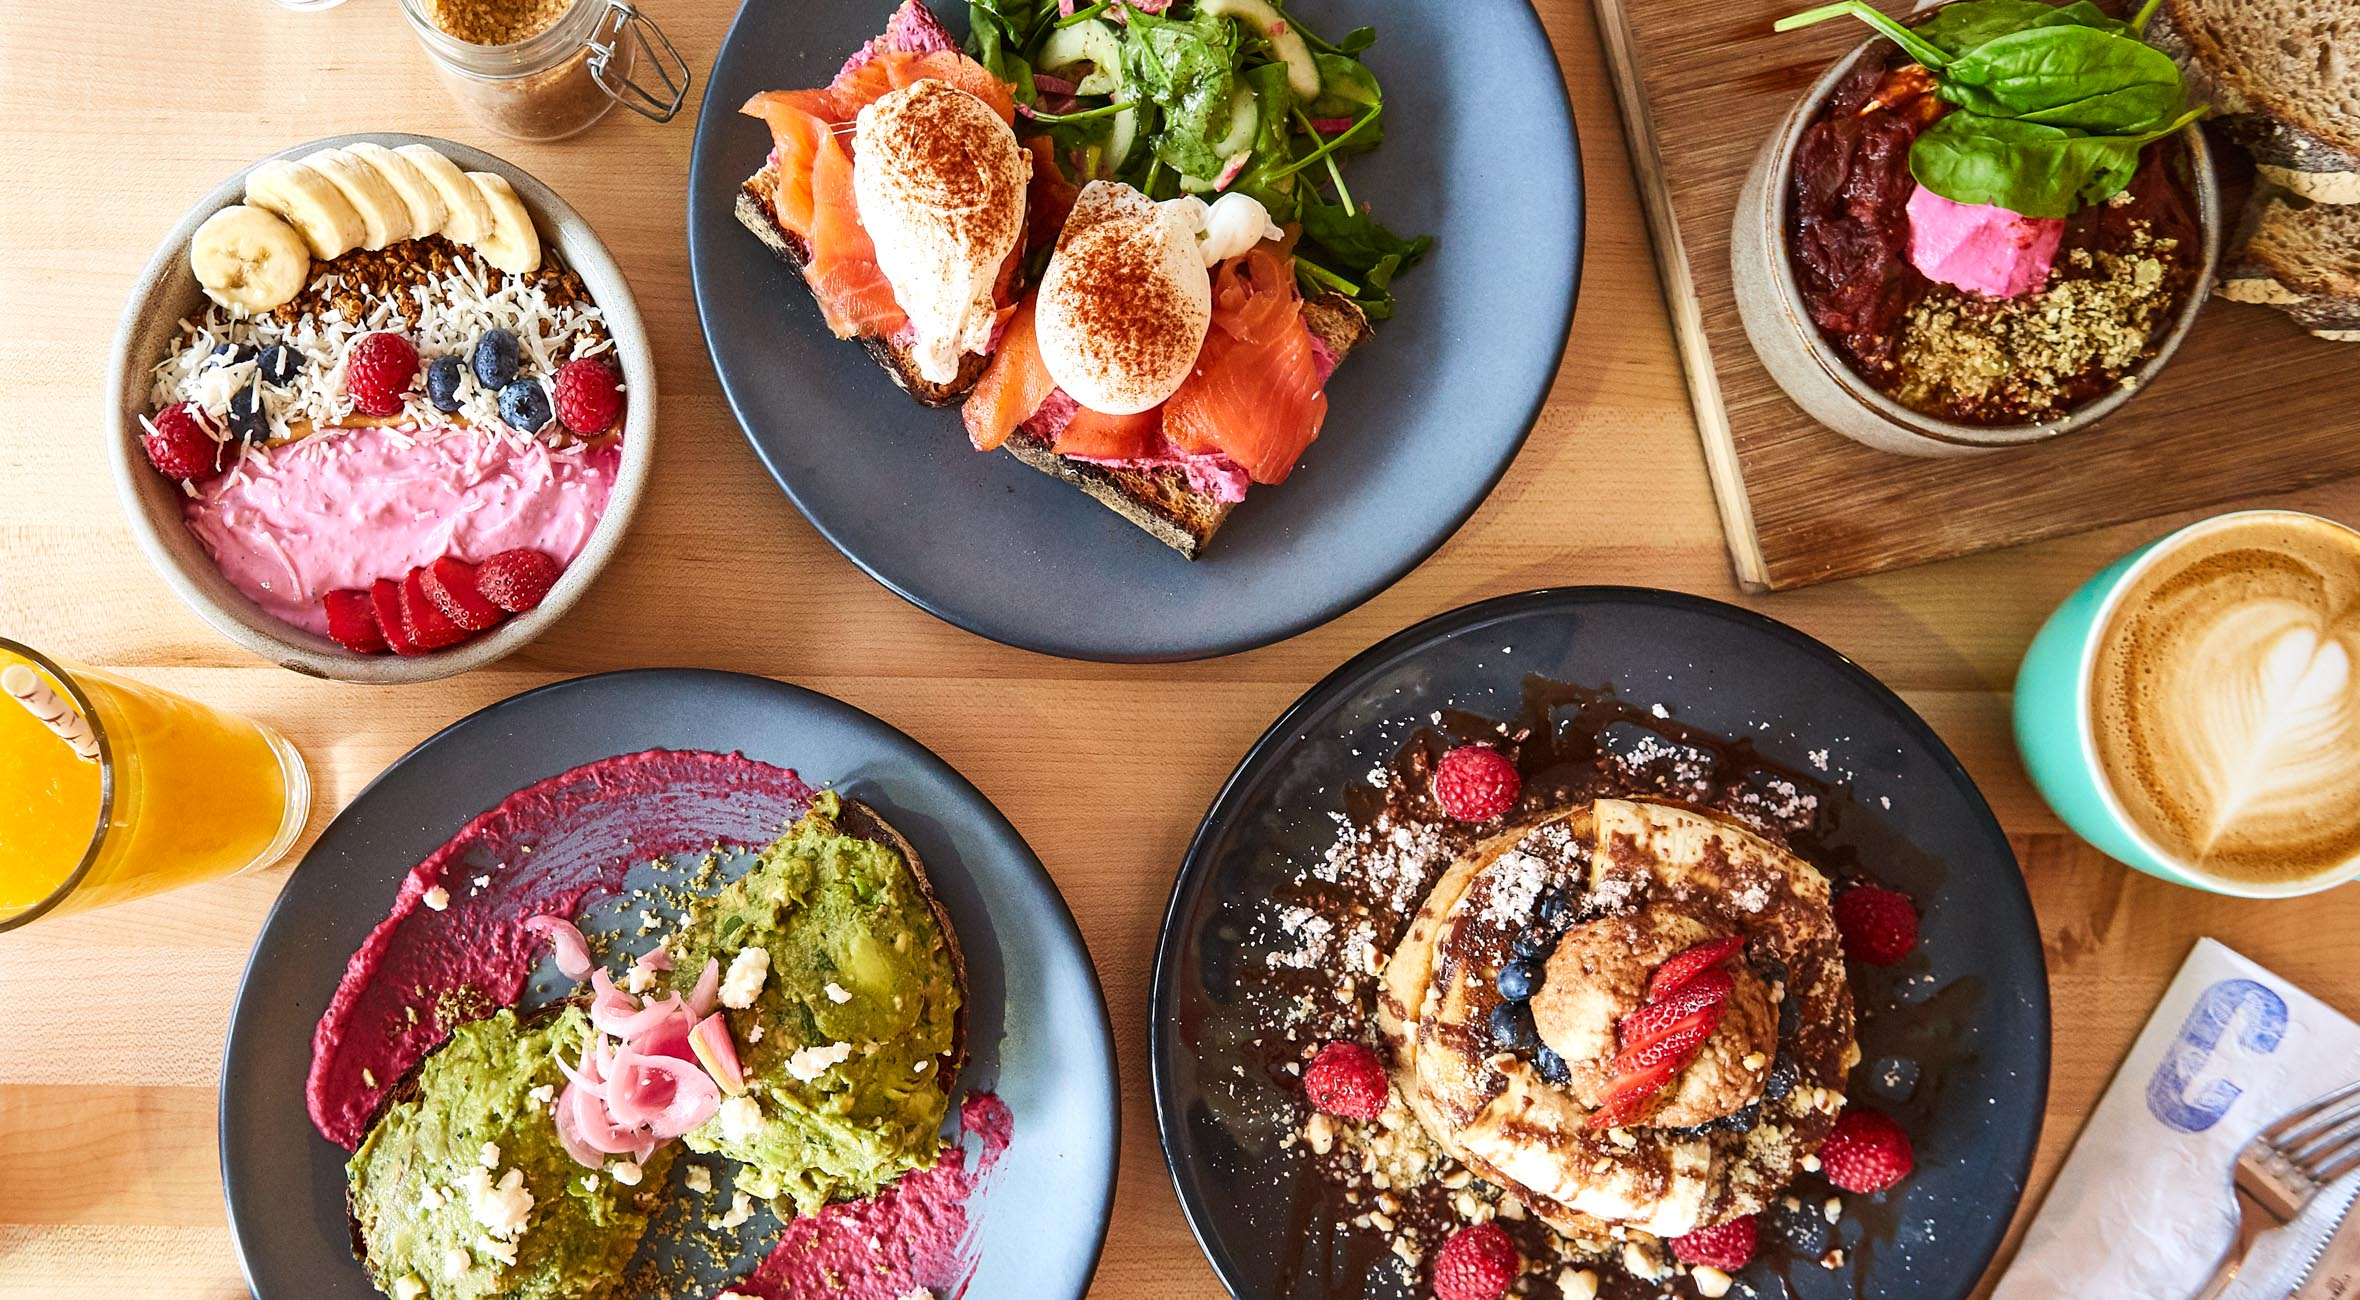 Choose Whatever You Like at Citizens of Gramercy – From Smashing Avocado to Salmon Eggs, Barbie Bowls, Fluffy Pancakes etc.